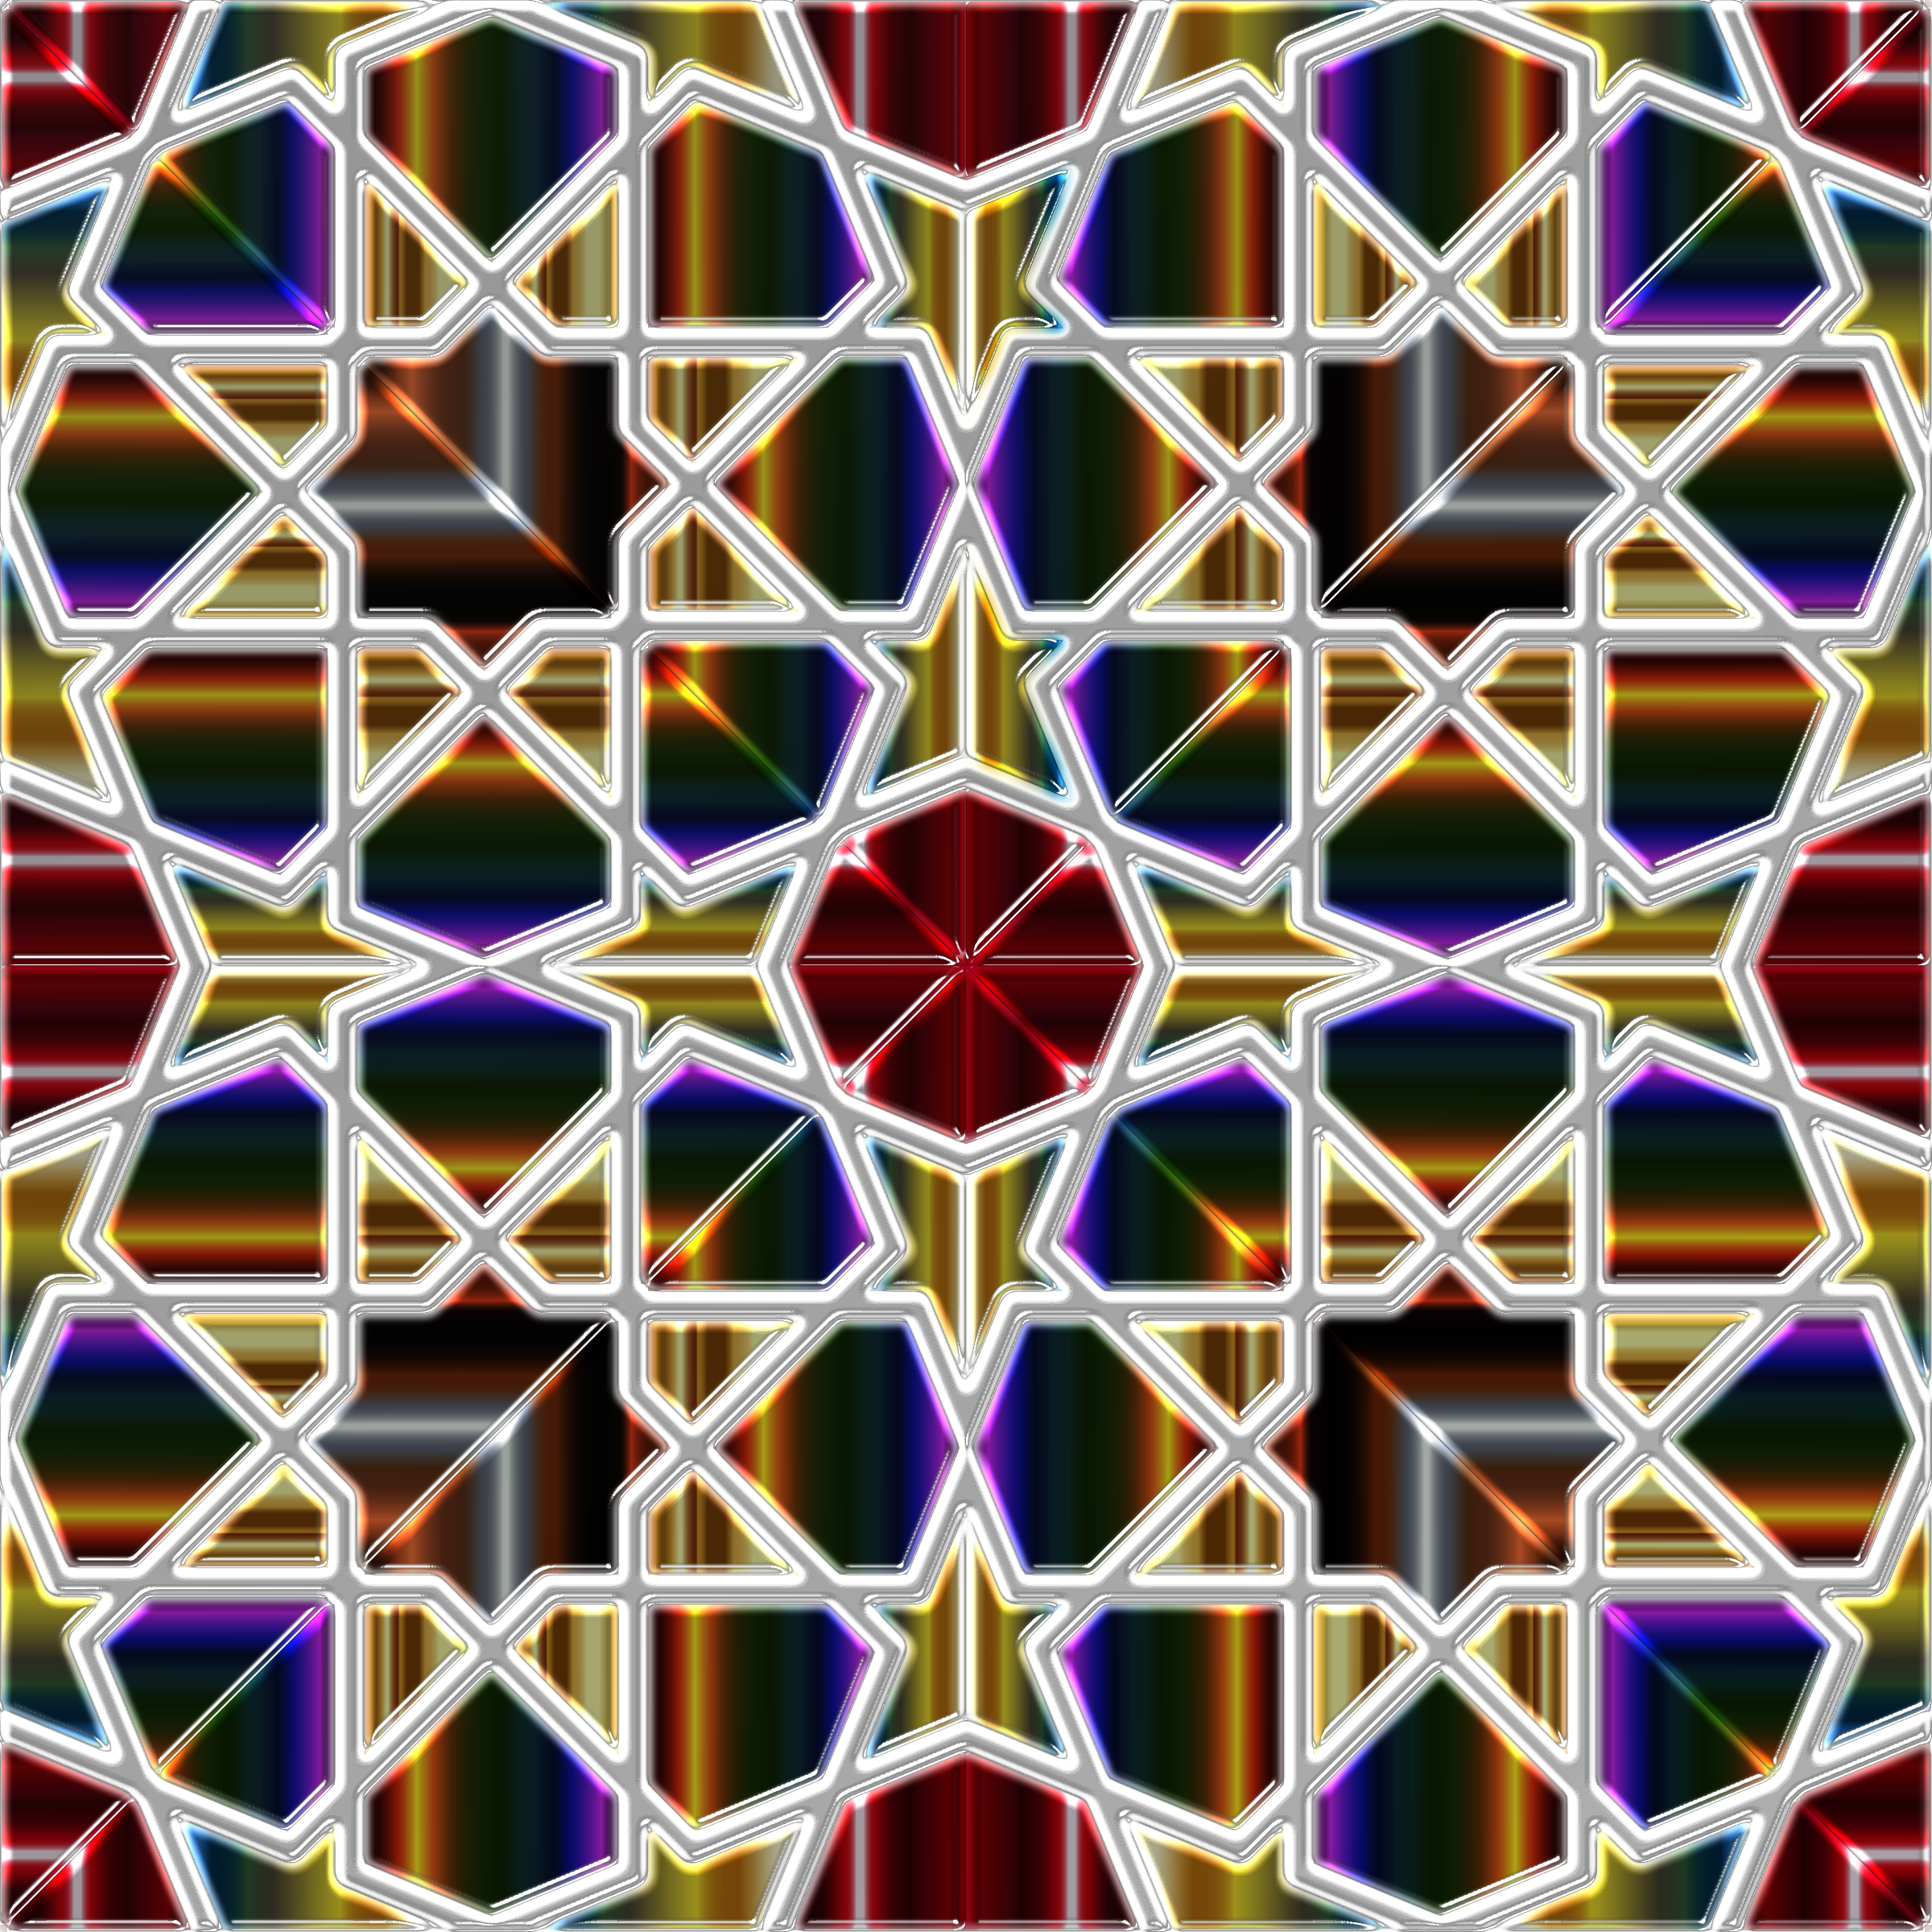 Islamic Geometric Tile 9 by GDJ